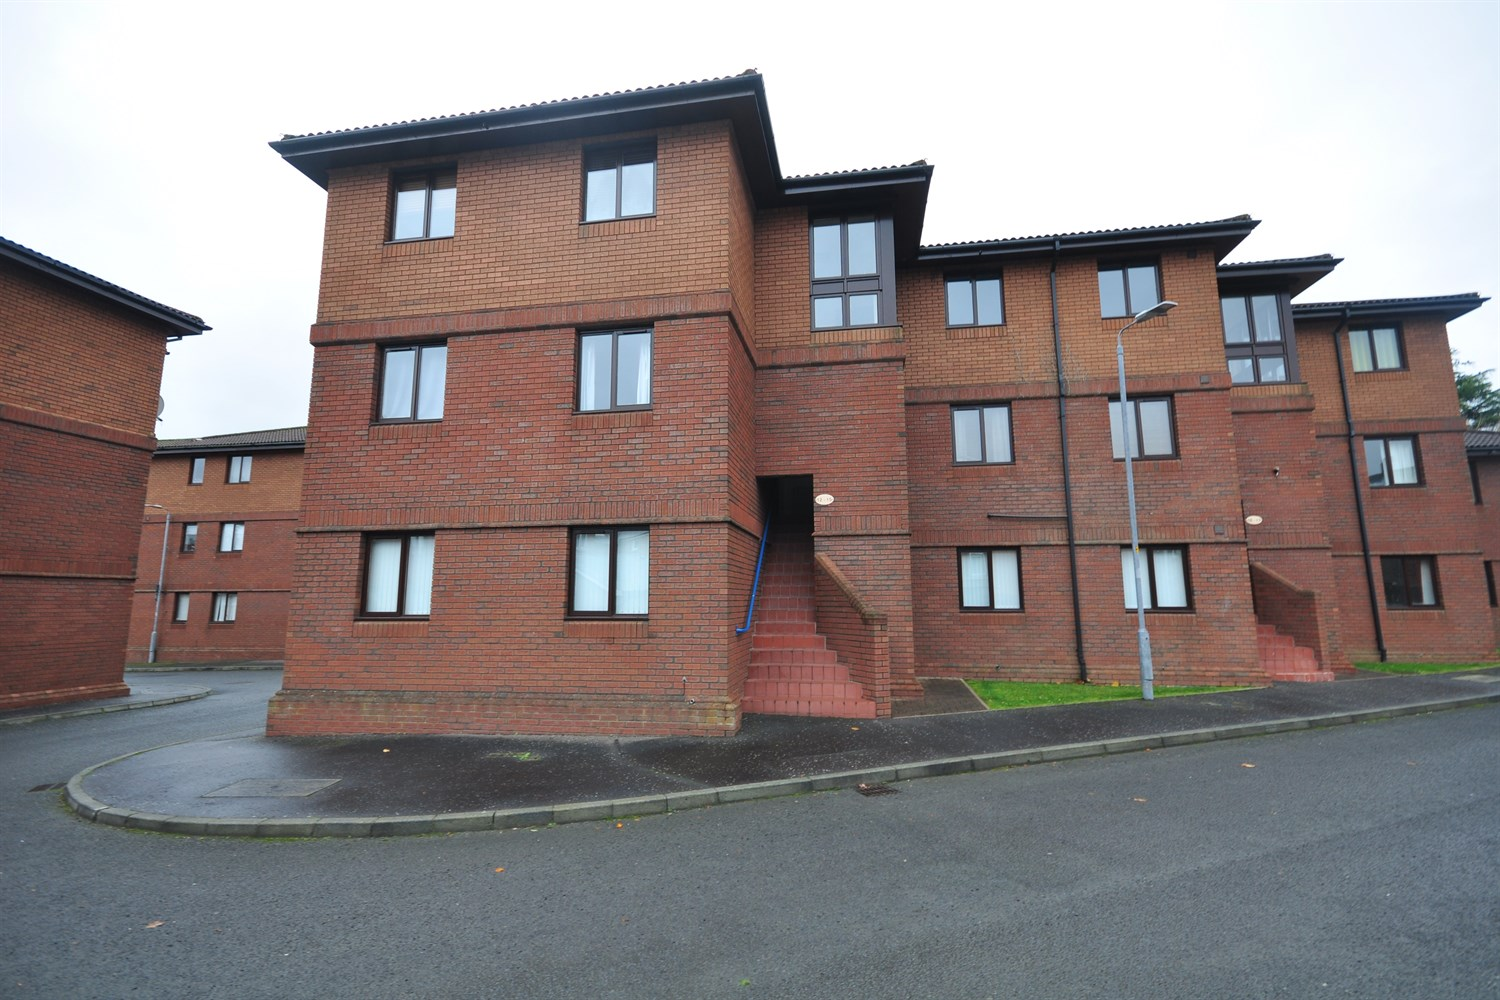 15 Lockside Court, Stranmillis, Belfast, BT9 5GQ